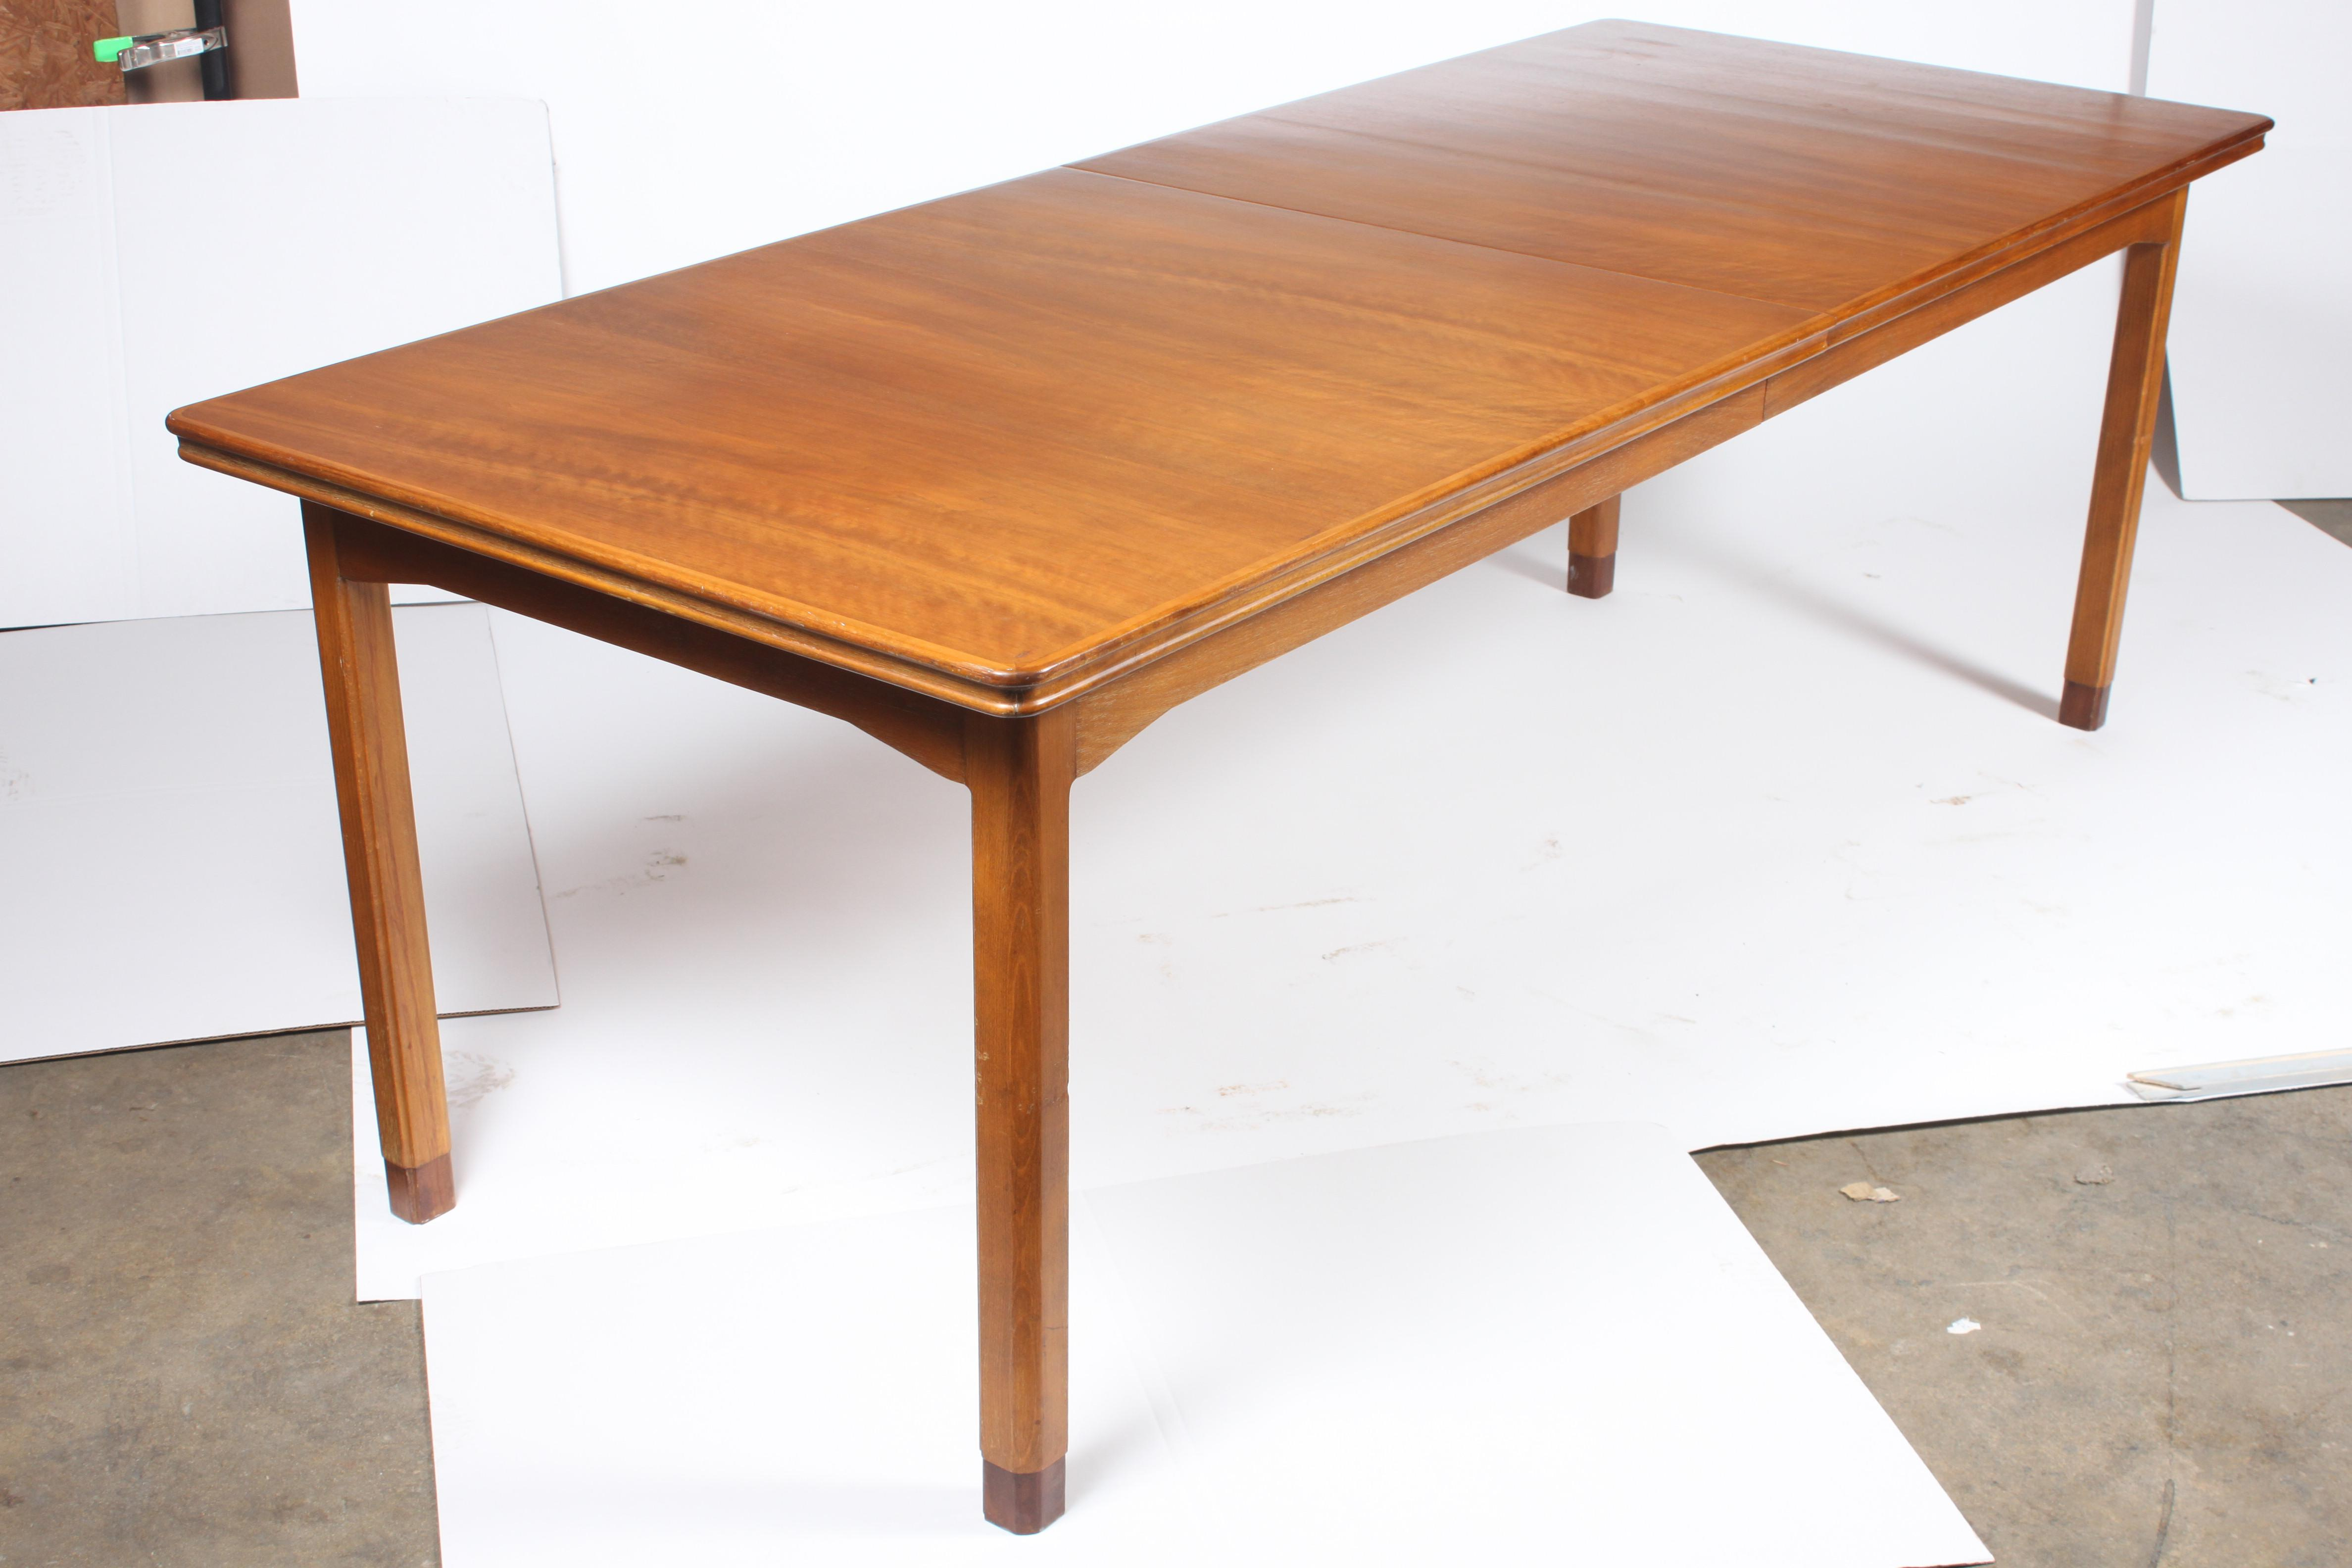 Attractive Art Deco Danish Art Deco Dining Table For Sale   Image 3 Of 7